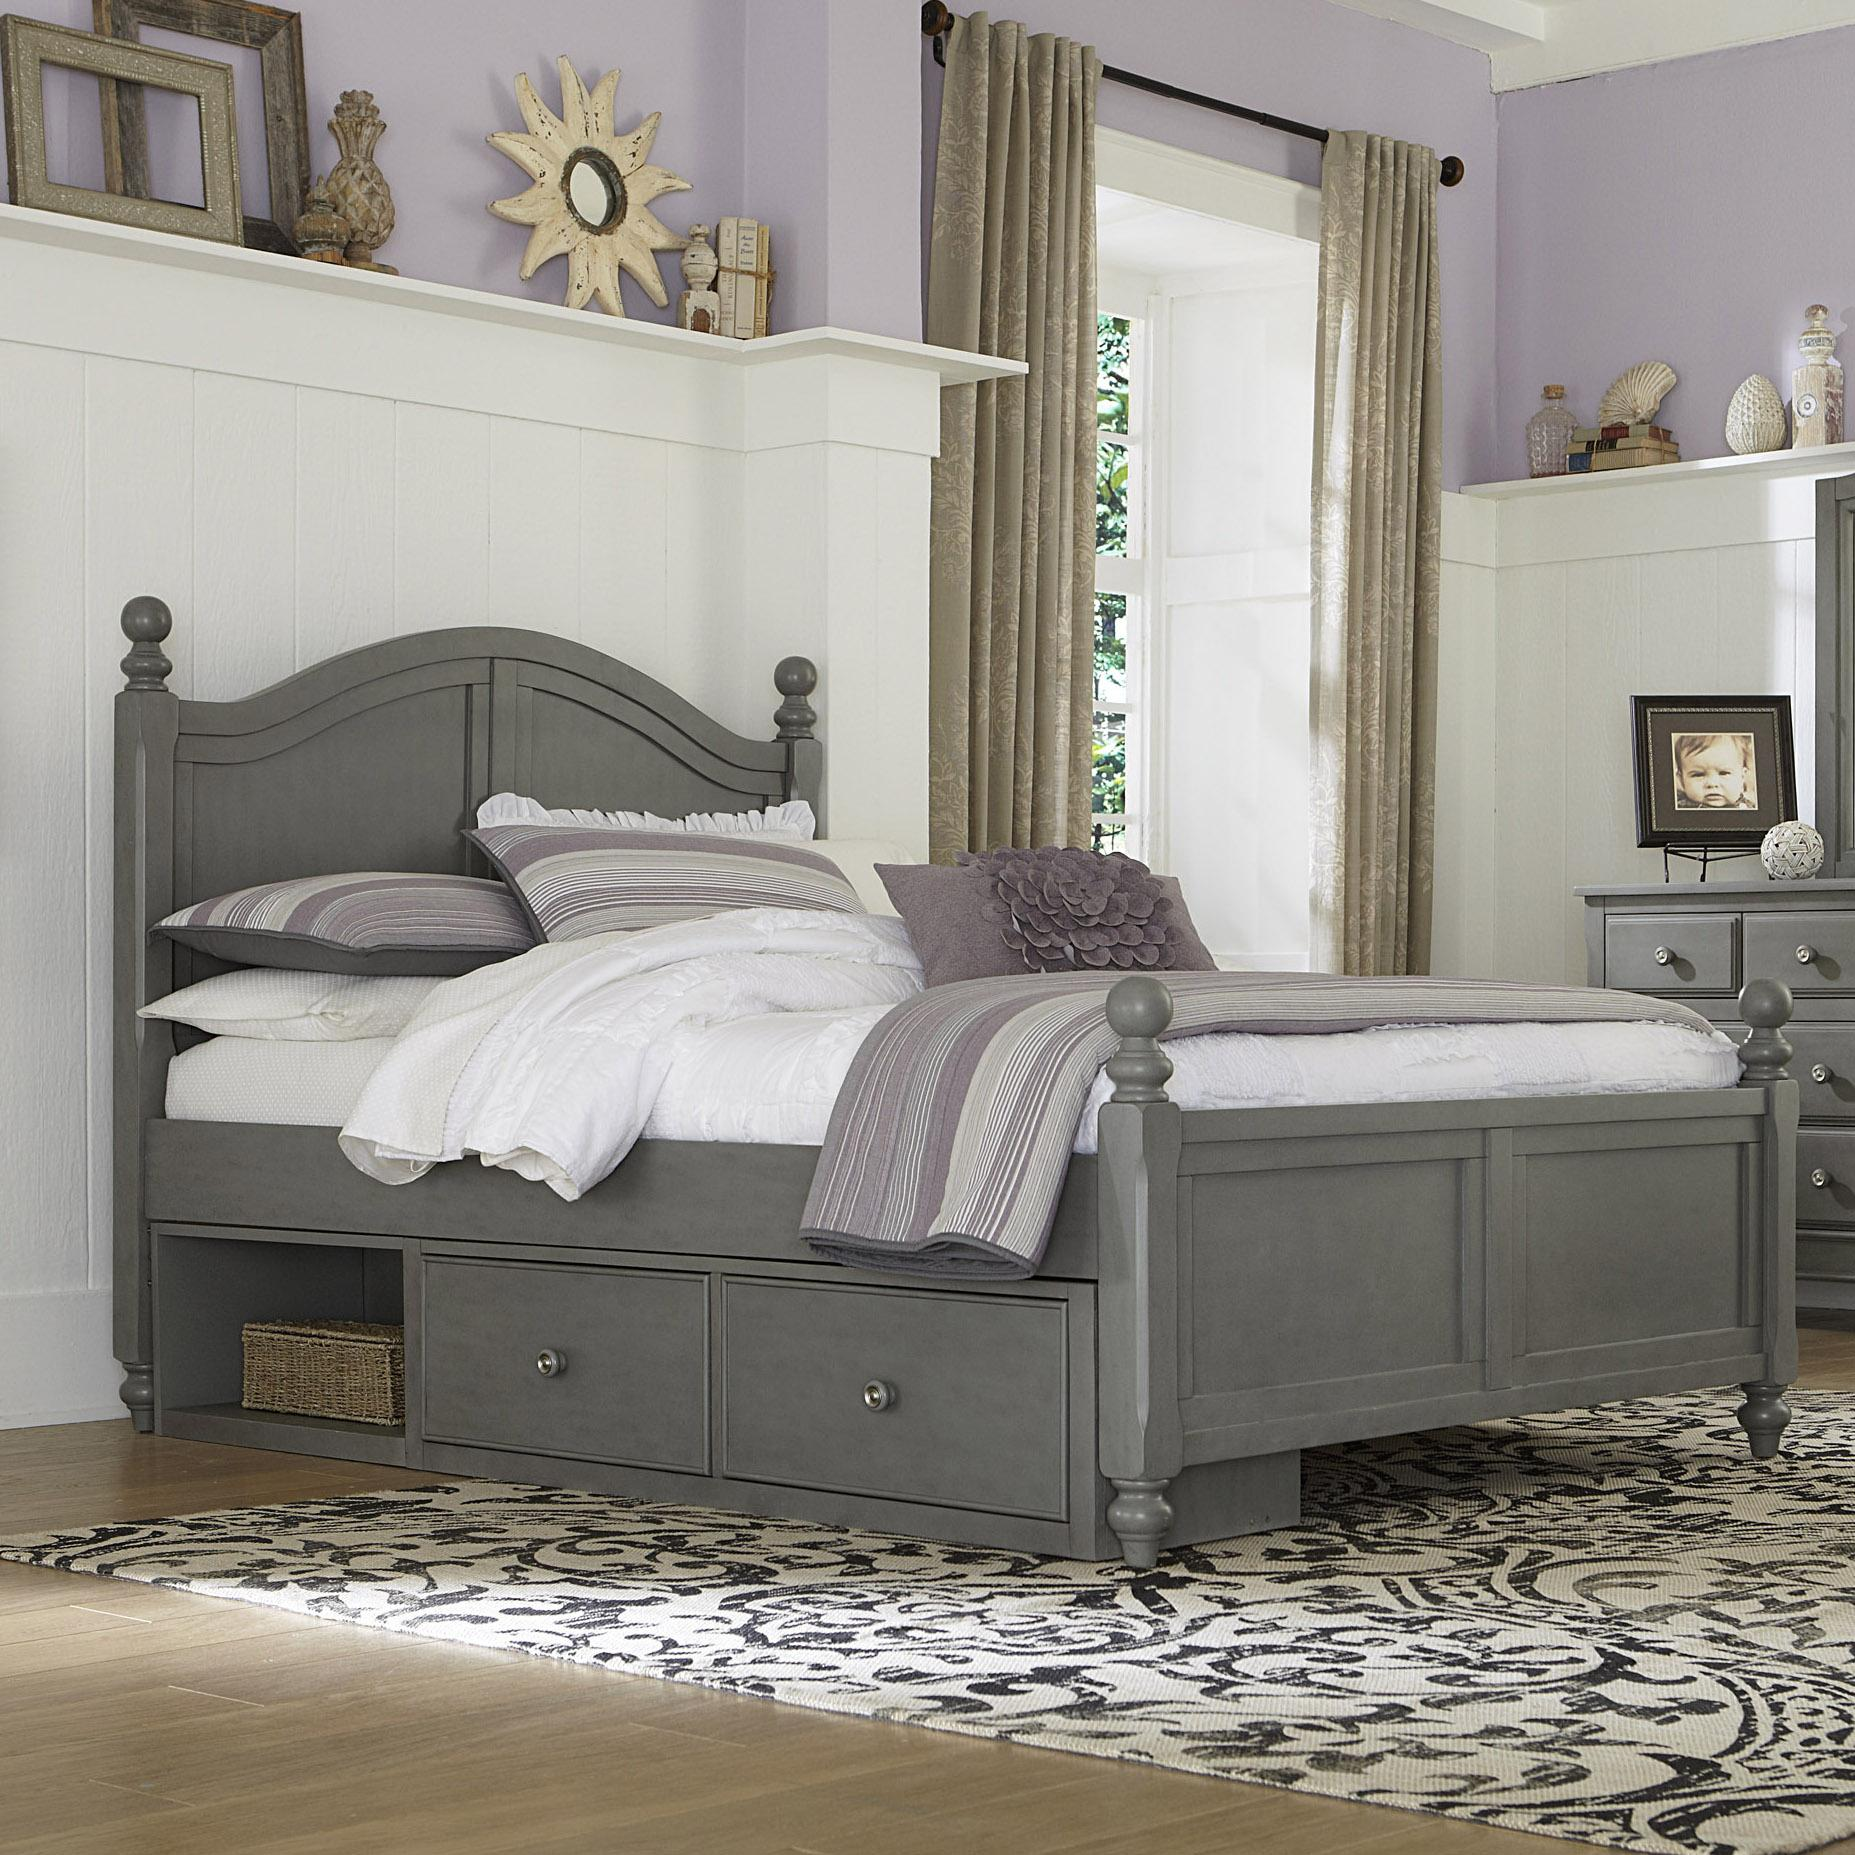 Ne kids lake house full bed with arched headboard and underneath storage dunk bright Lake home bedroom furniture